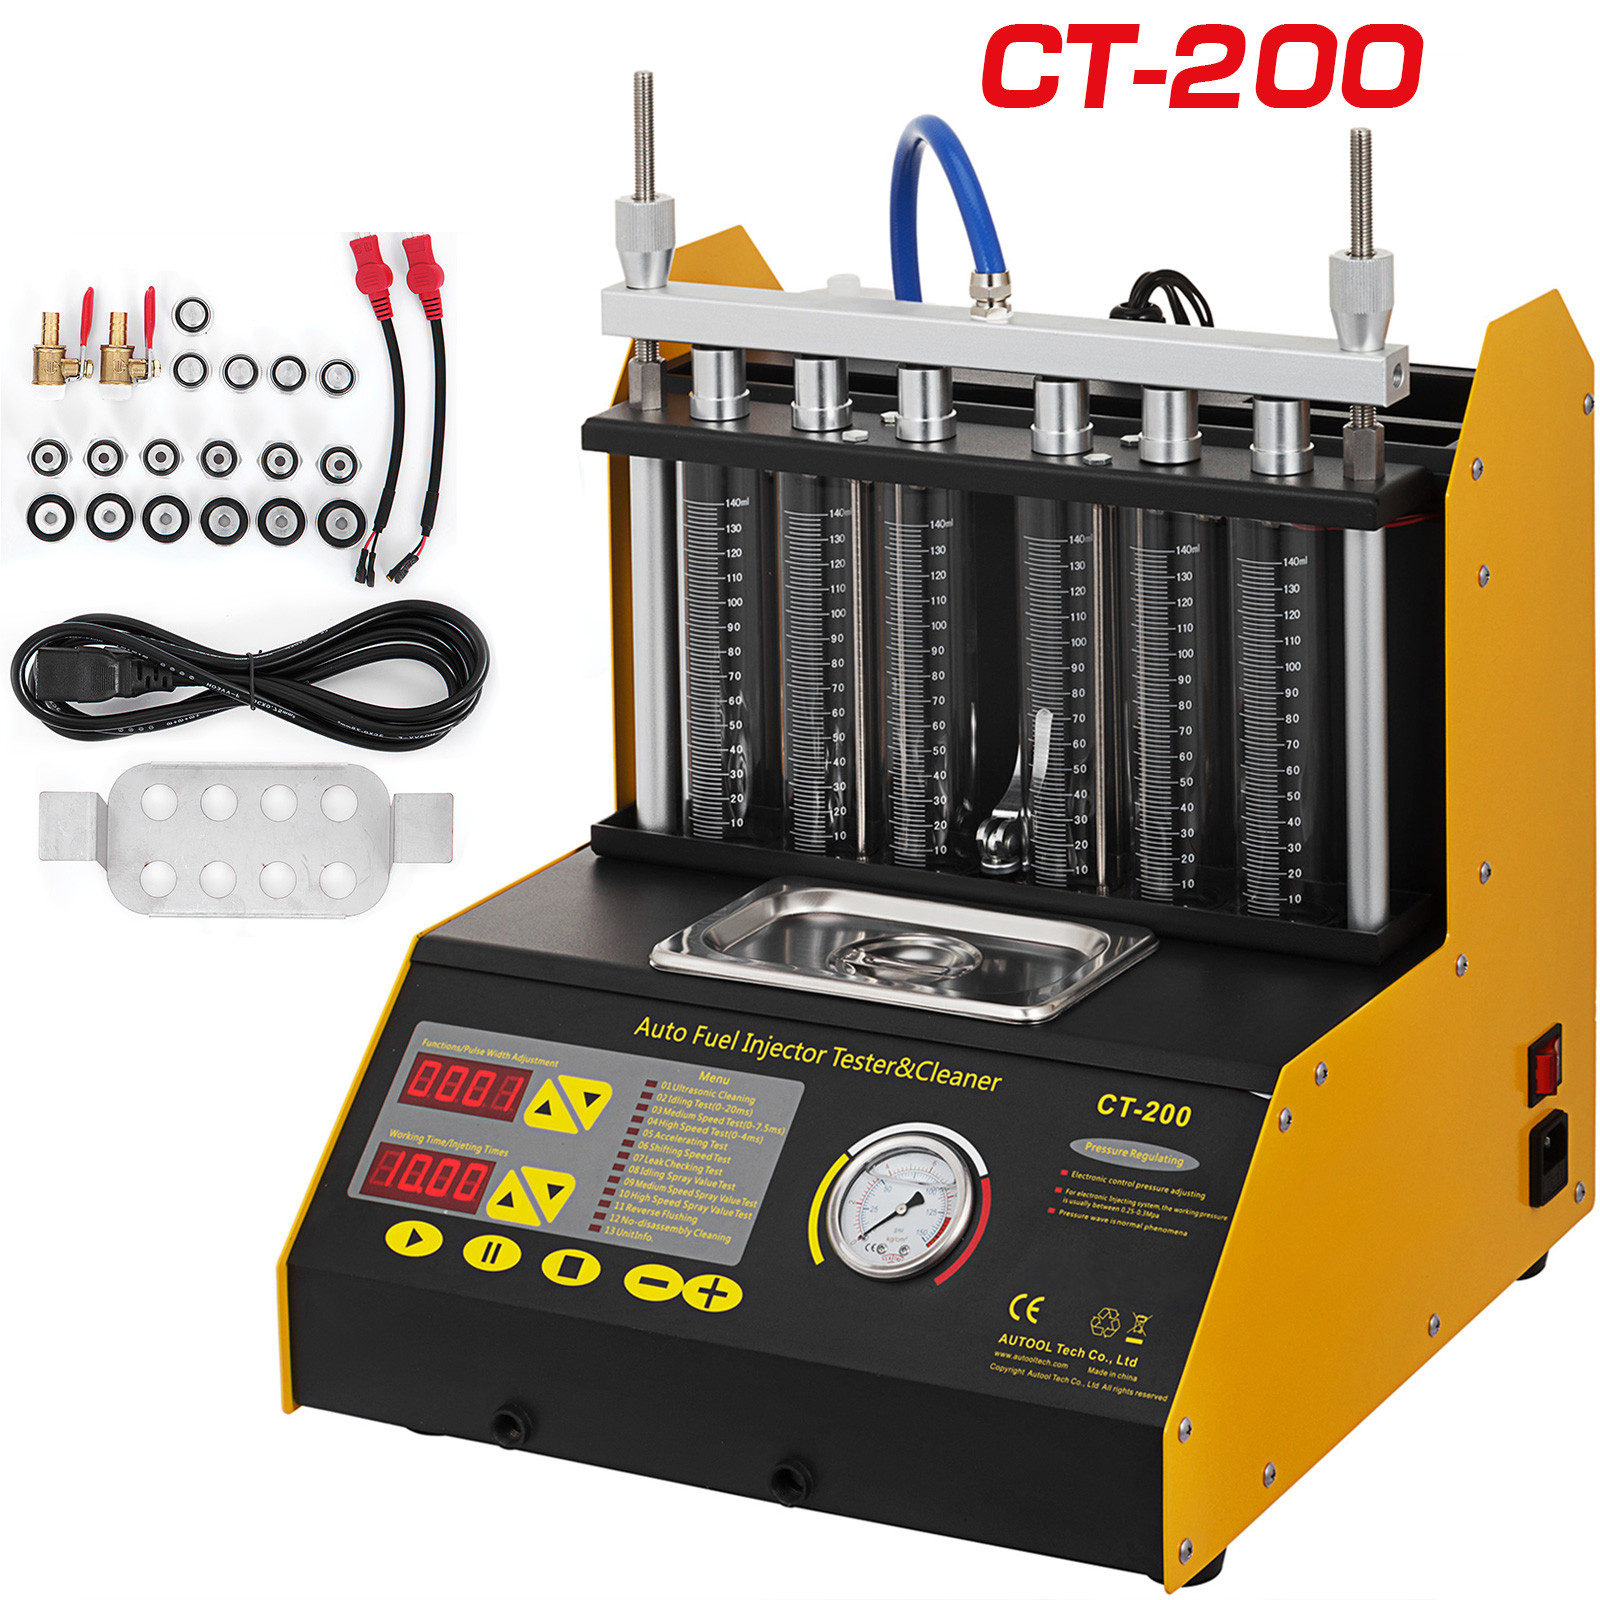 Details about Autool CT200 Ultrasonic Fuel Injector Cleaner Tester Machine  For Car motorcycle